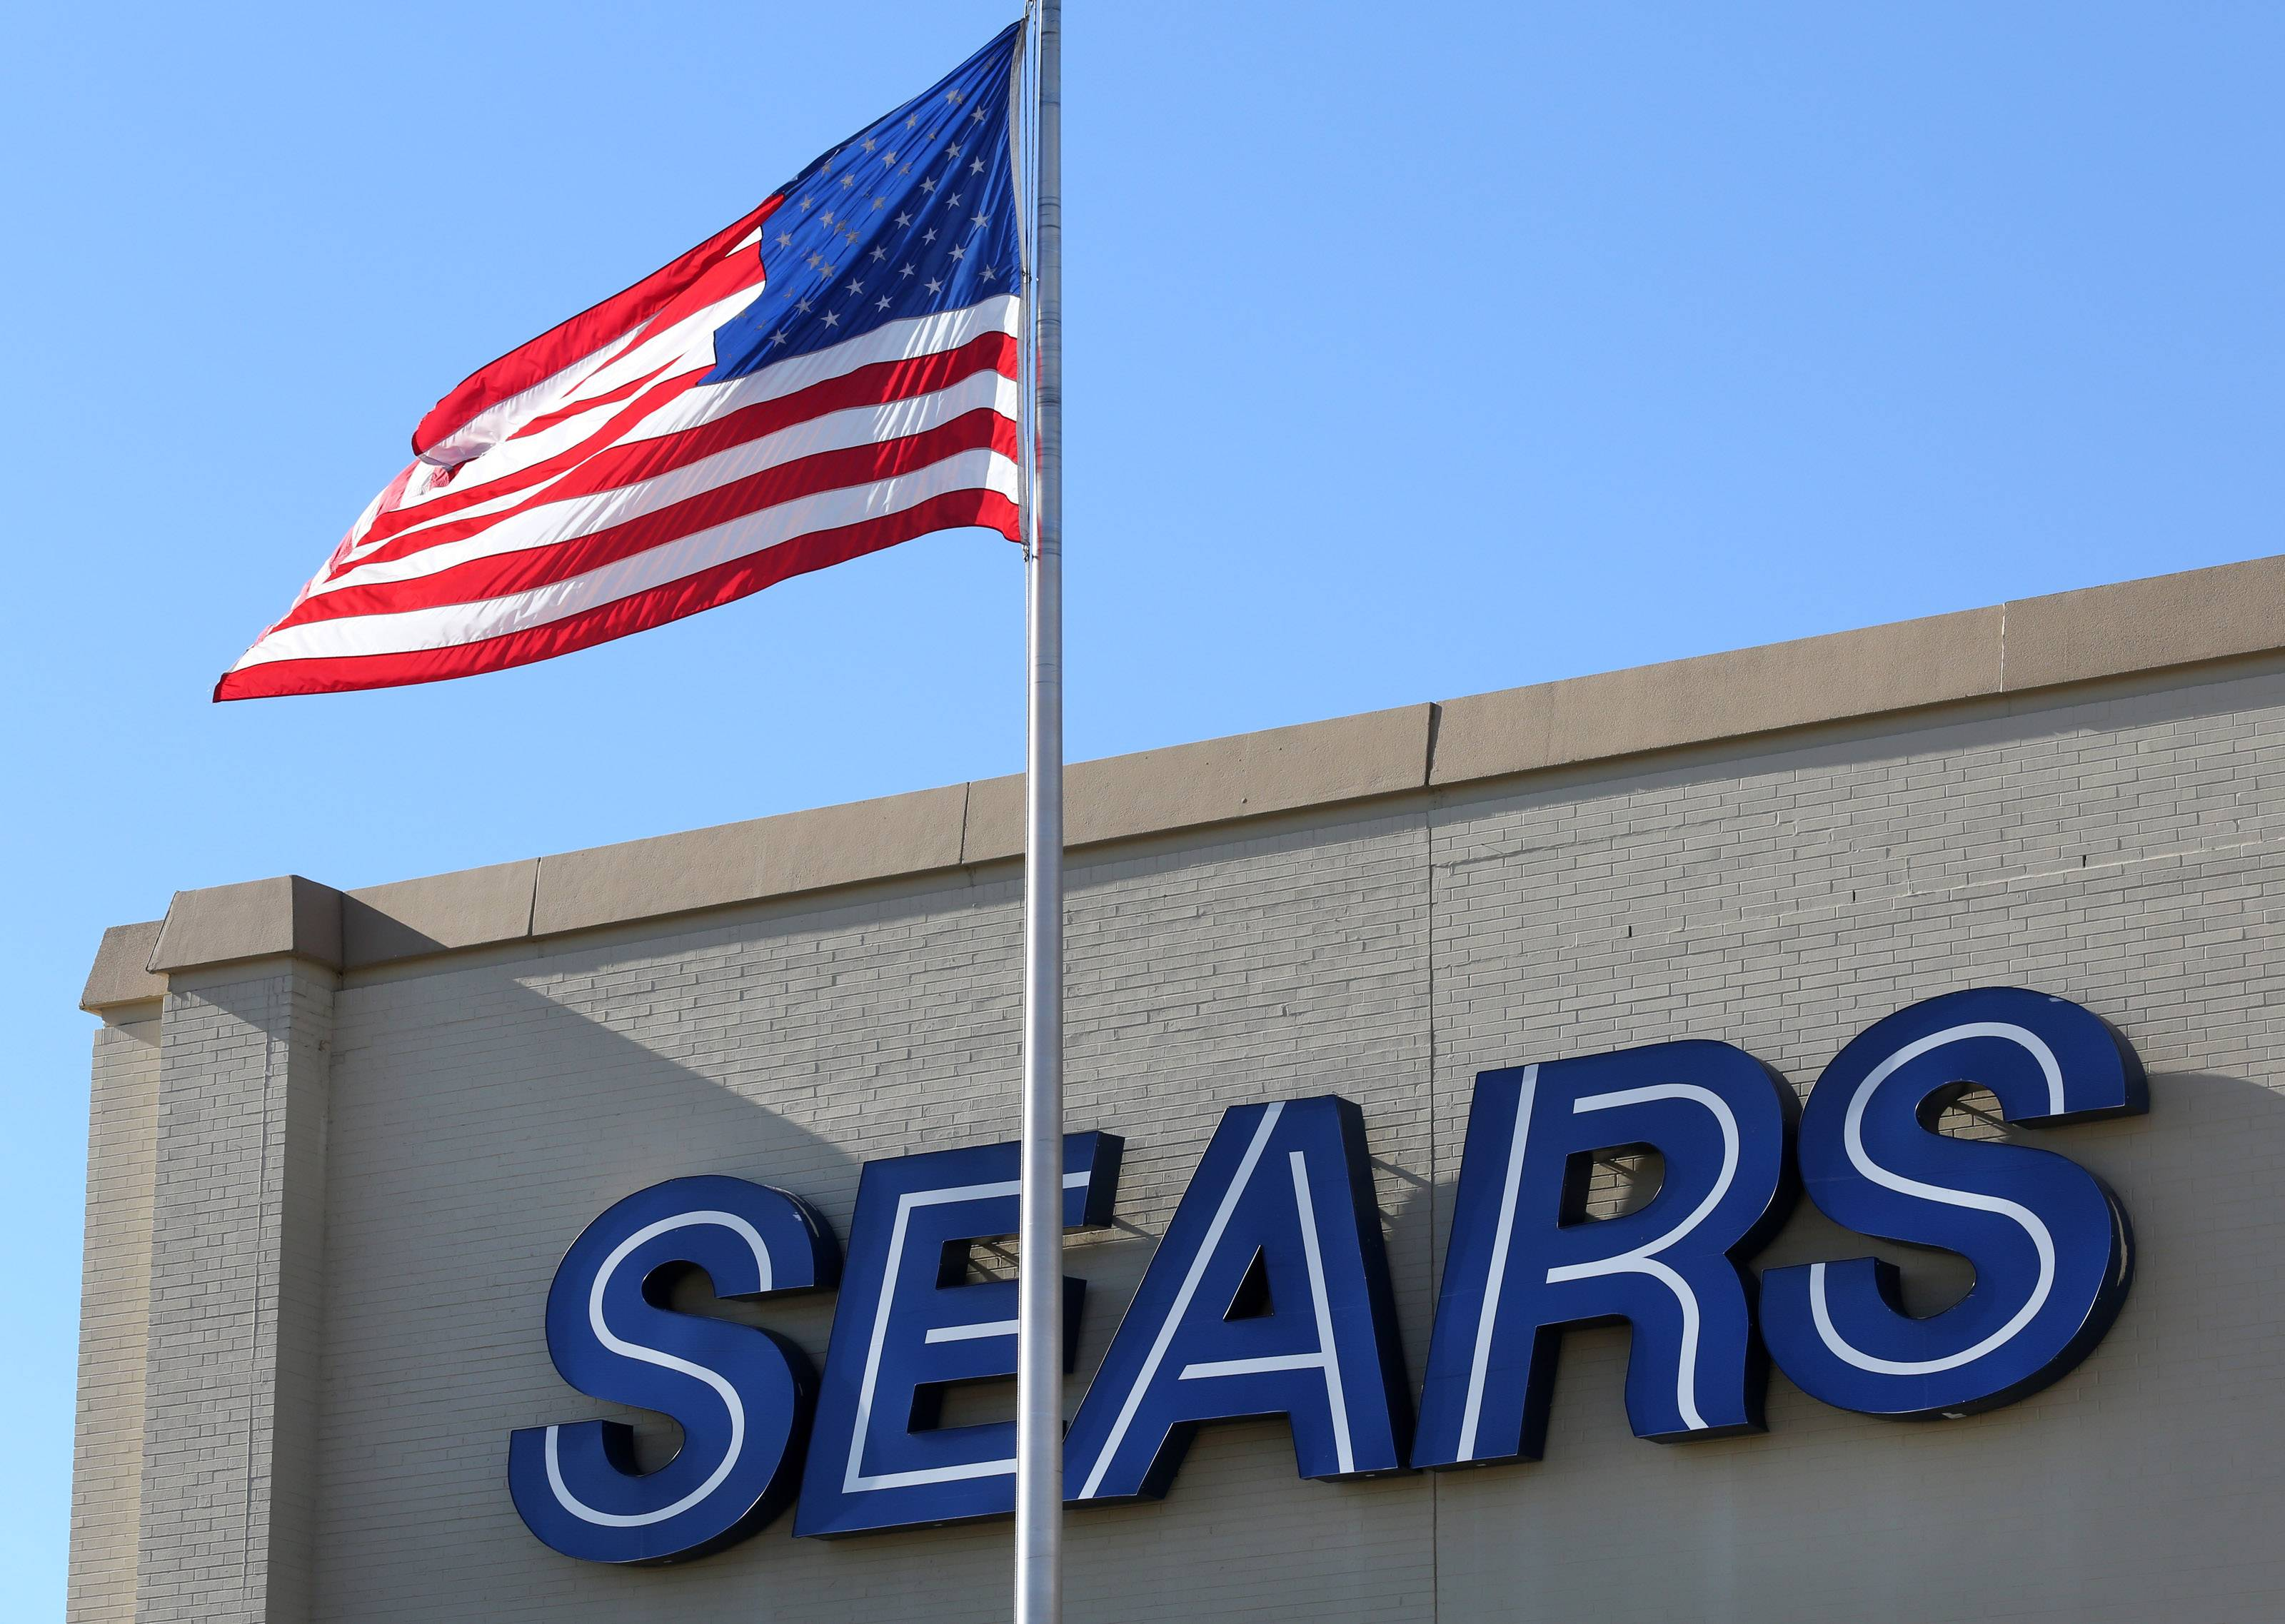 Hoffman Estates-based Sears Holdings Corp. will bleed hundreds of millions of dollars more than it expected over the coming weeks, casting new doubt on whether the bankrupt retailer can avoid liquidation, according to revised financial forecasts.